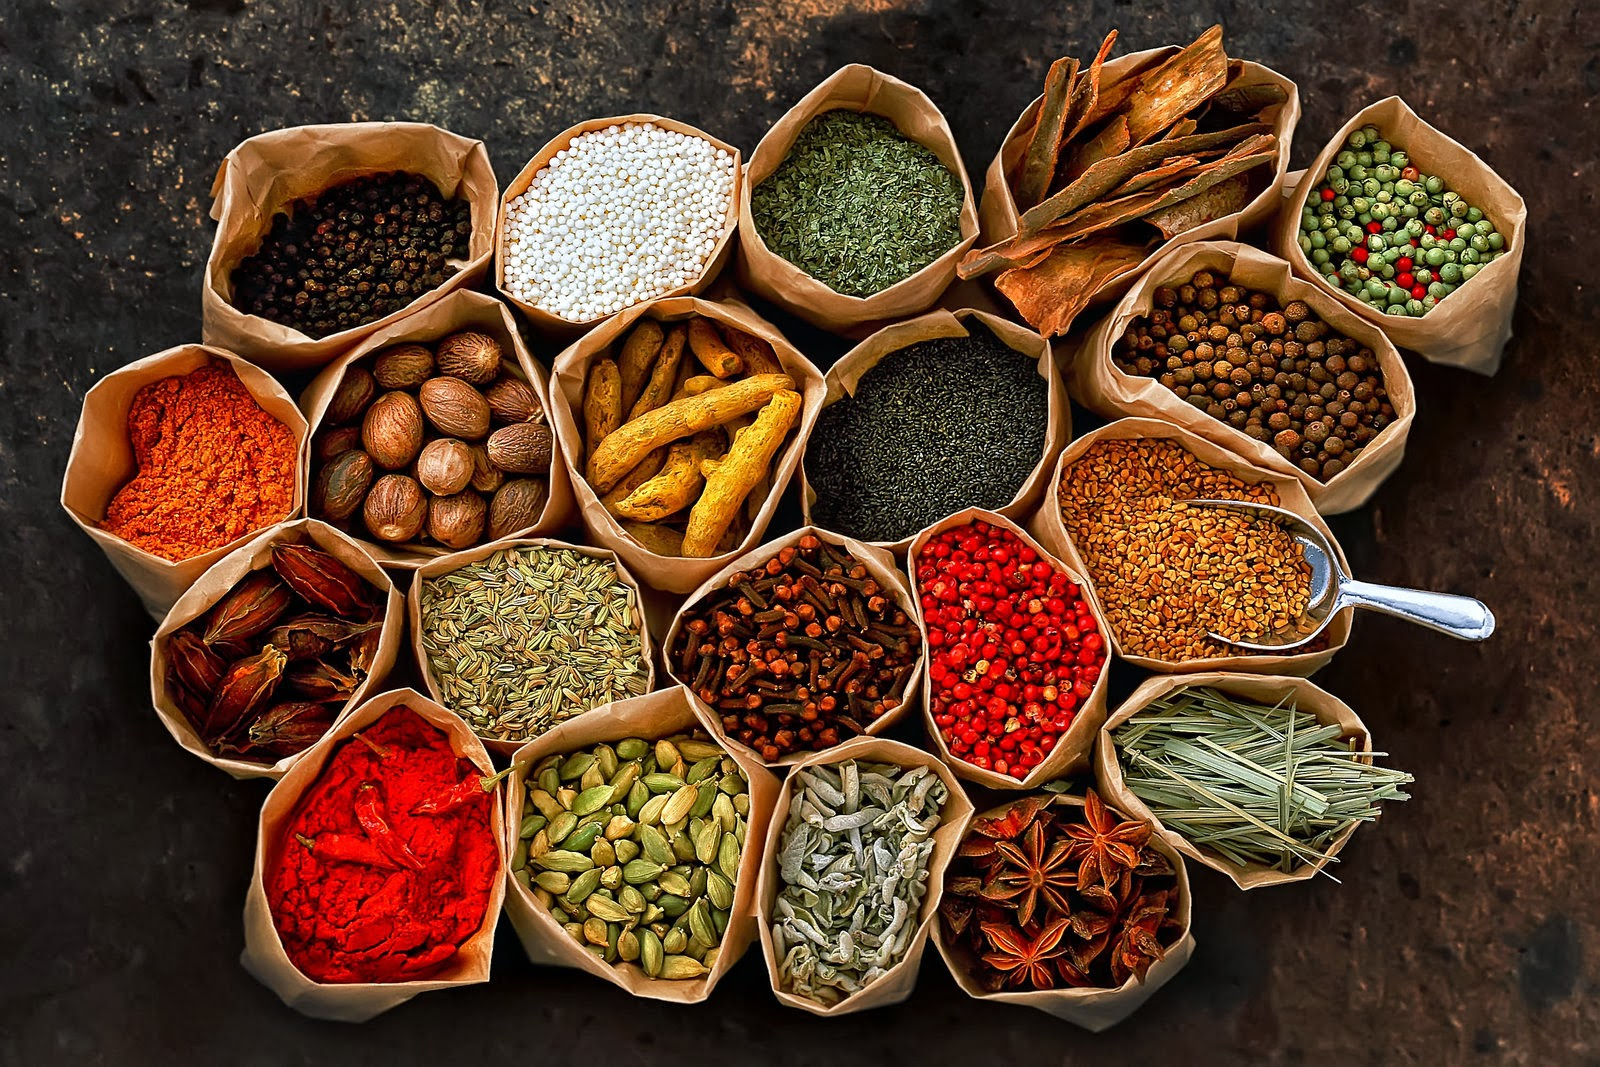 Herbs And Spices Backgrounds on Wallpapers Vista